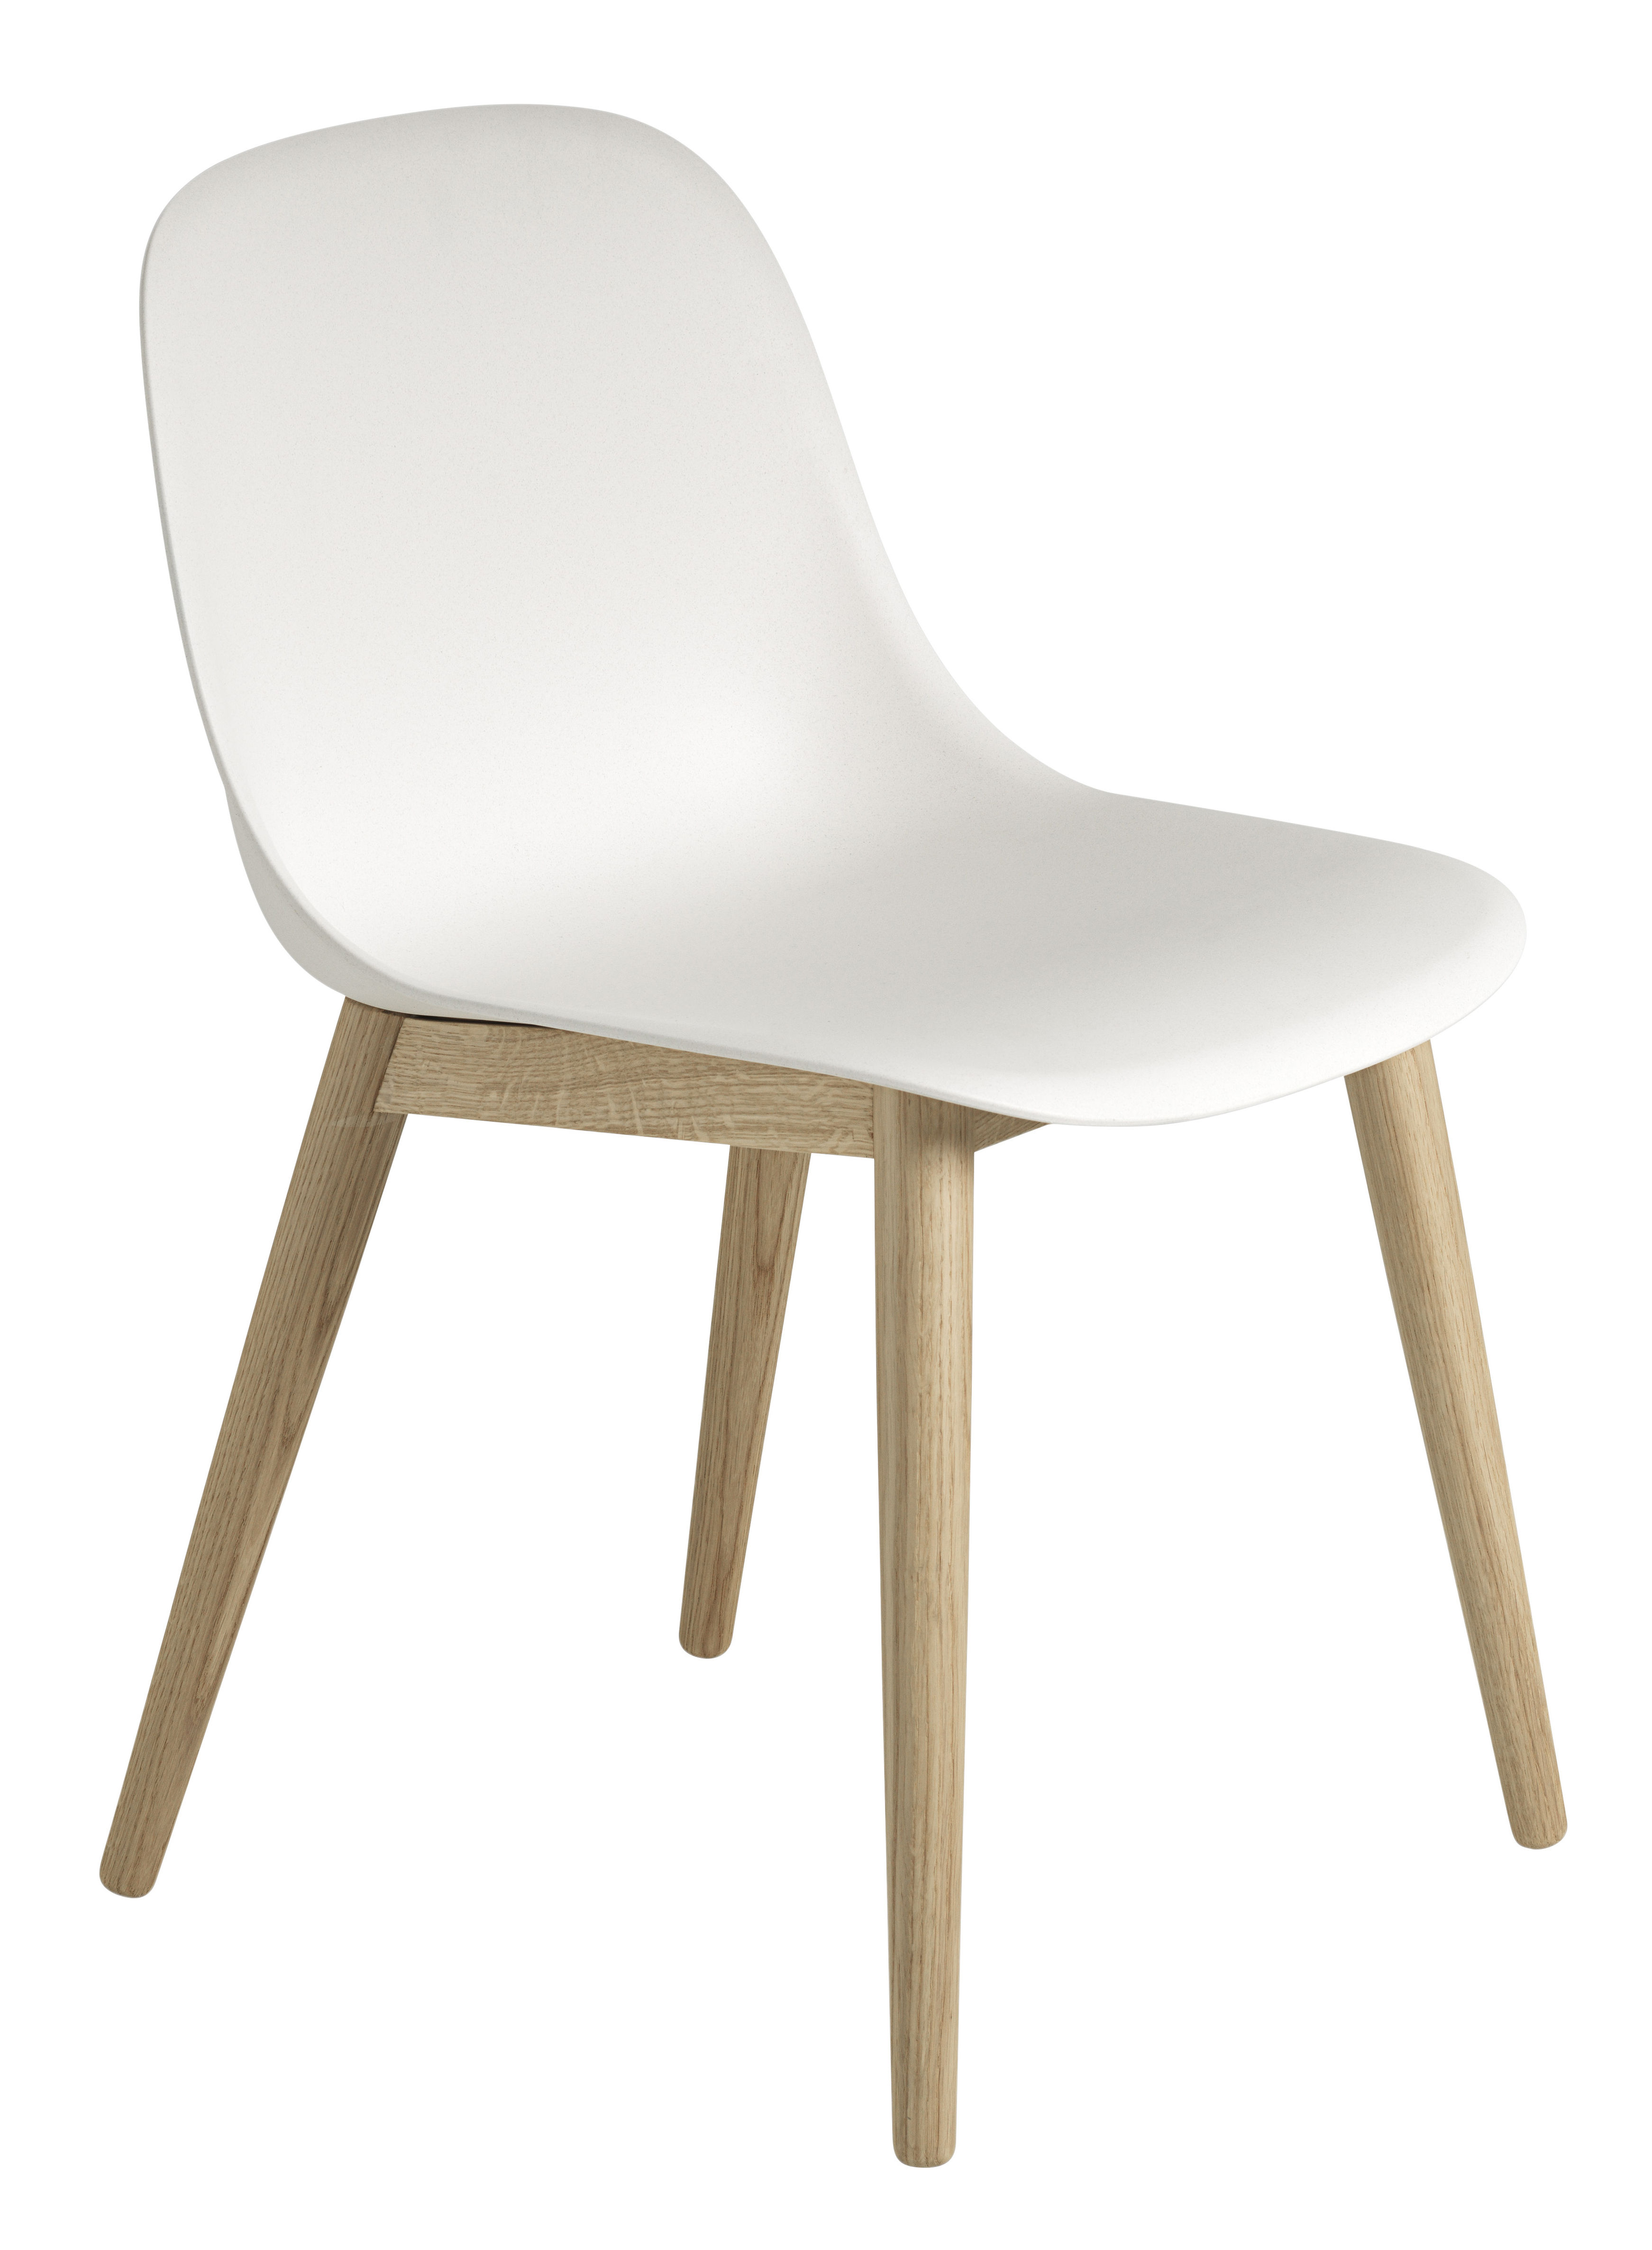 Furniture Chairs Fiber Chair Wood Legs By Muuto White Natural